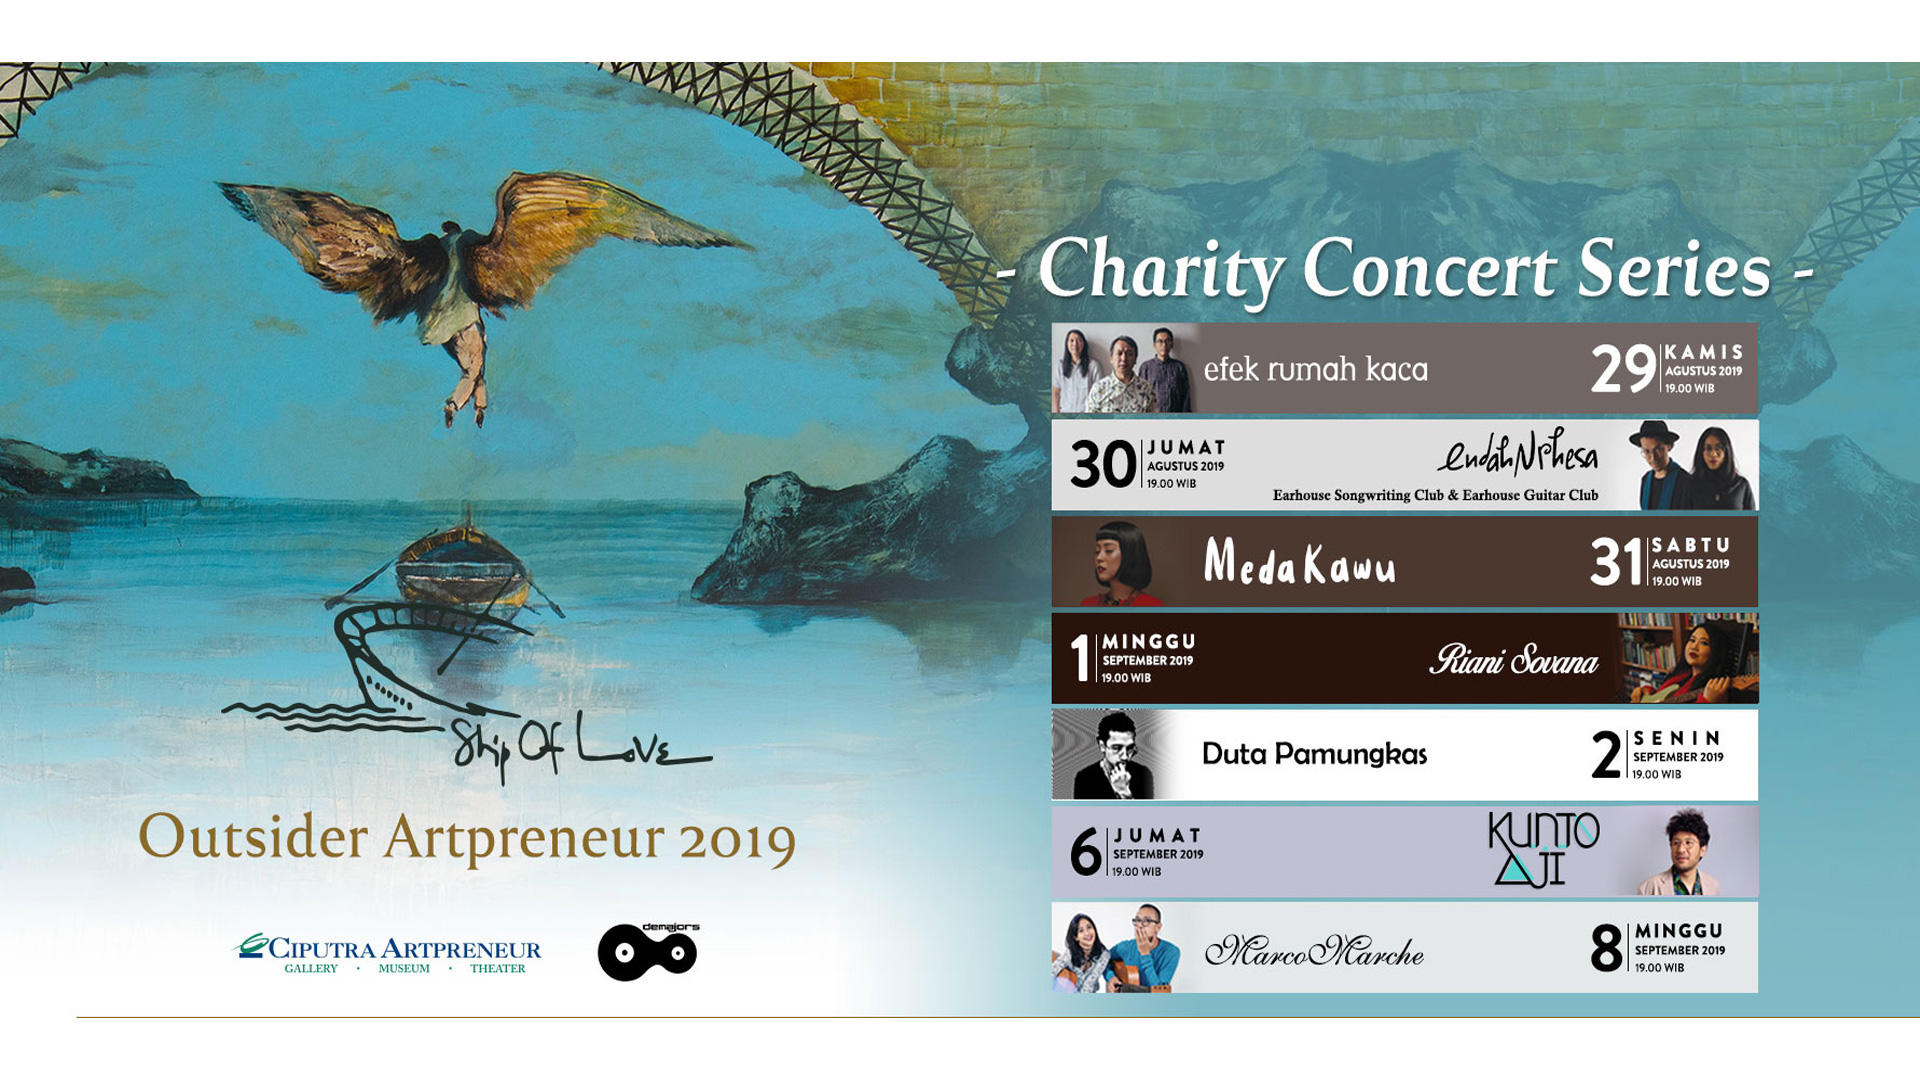 Charity Concert Series